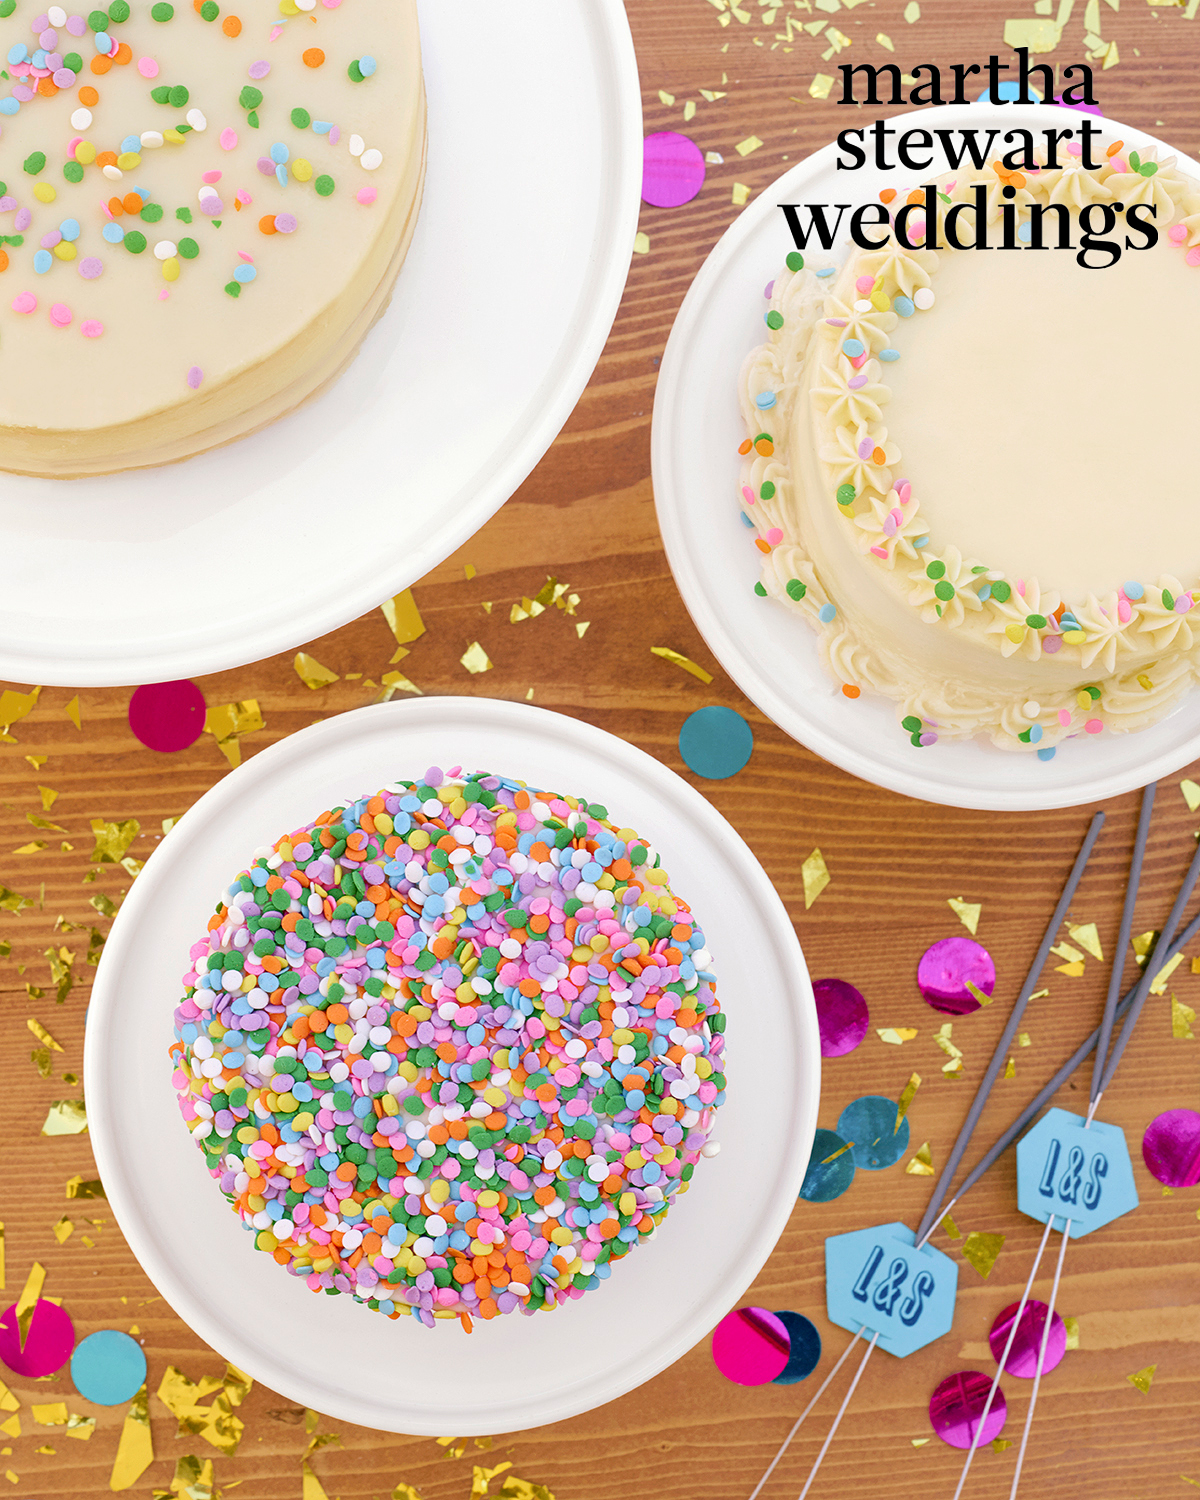 samira wiley lauren morelli wedding cakes